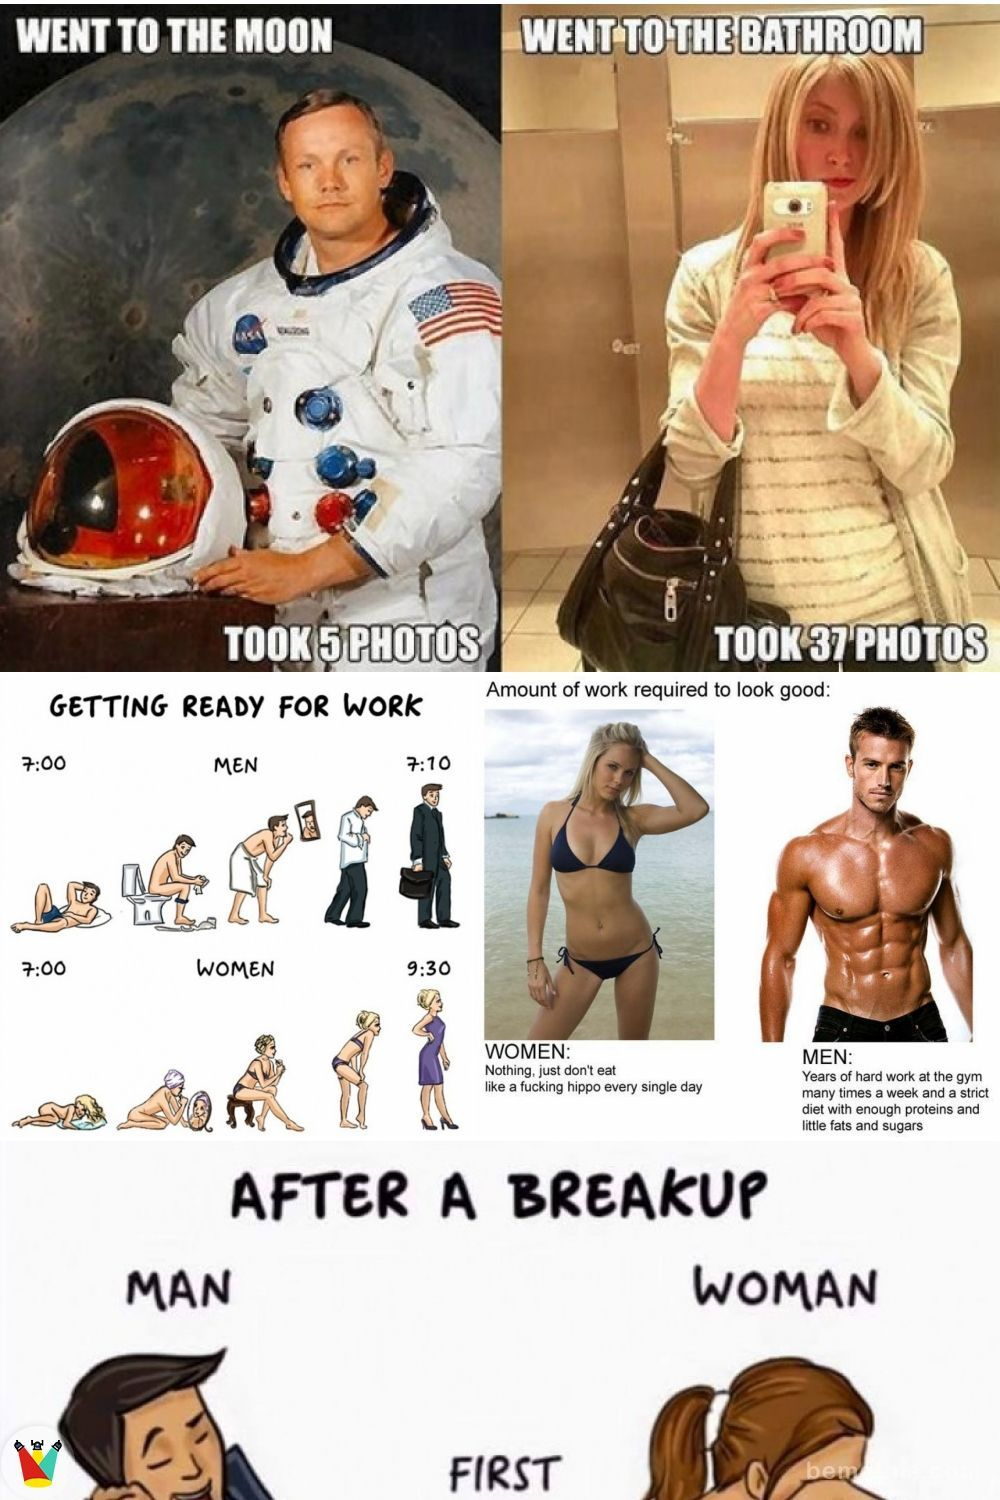 Difference Between Men And Women 34 Funny Memes Men Women Difference Funny Memes Photos Humor Men Vs Women Humor Funny Pictures Of Women Funny Memes